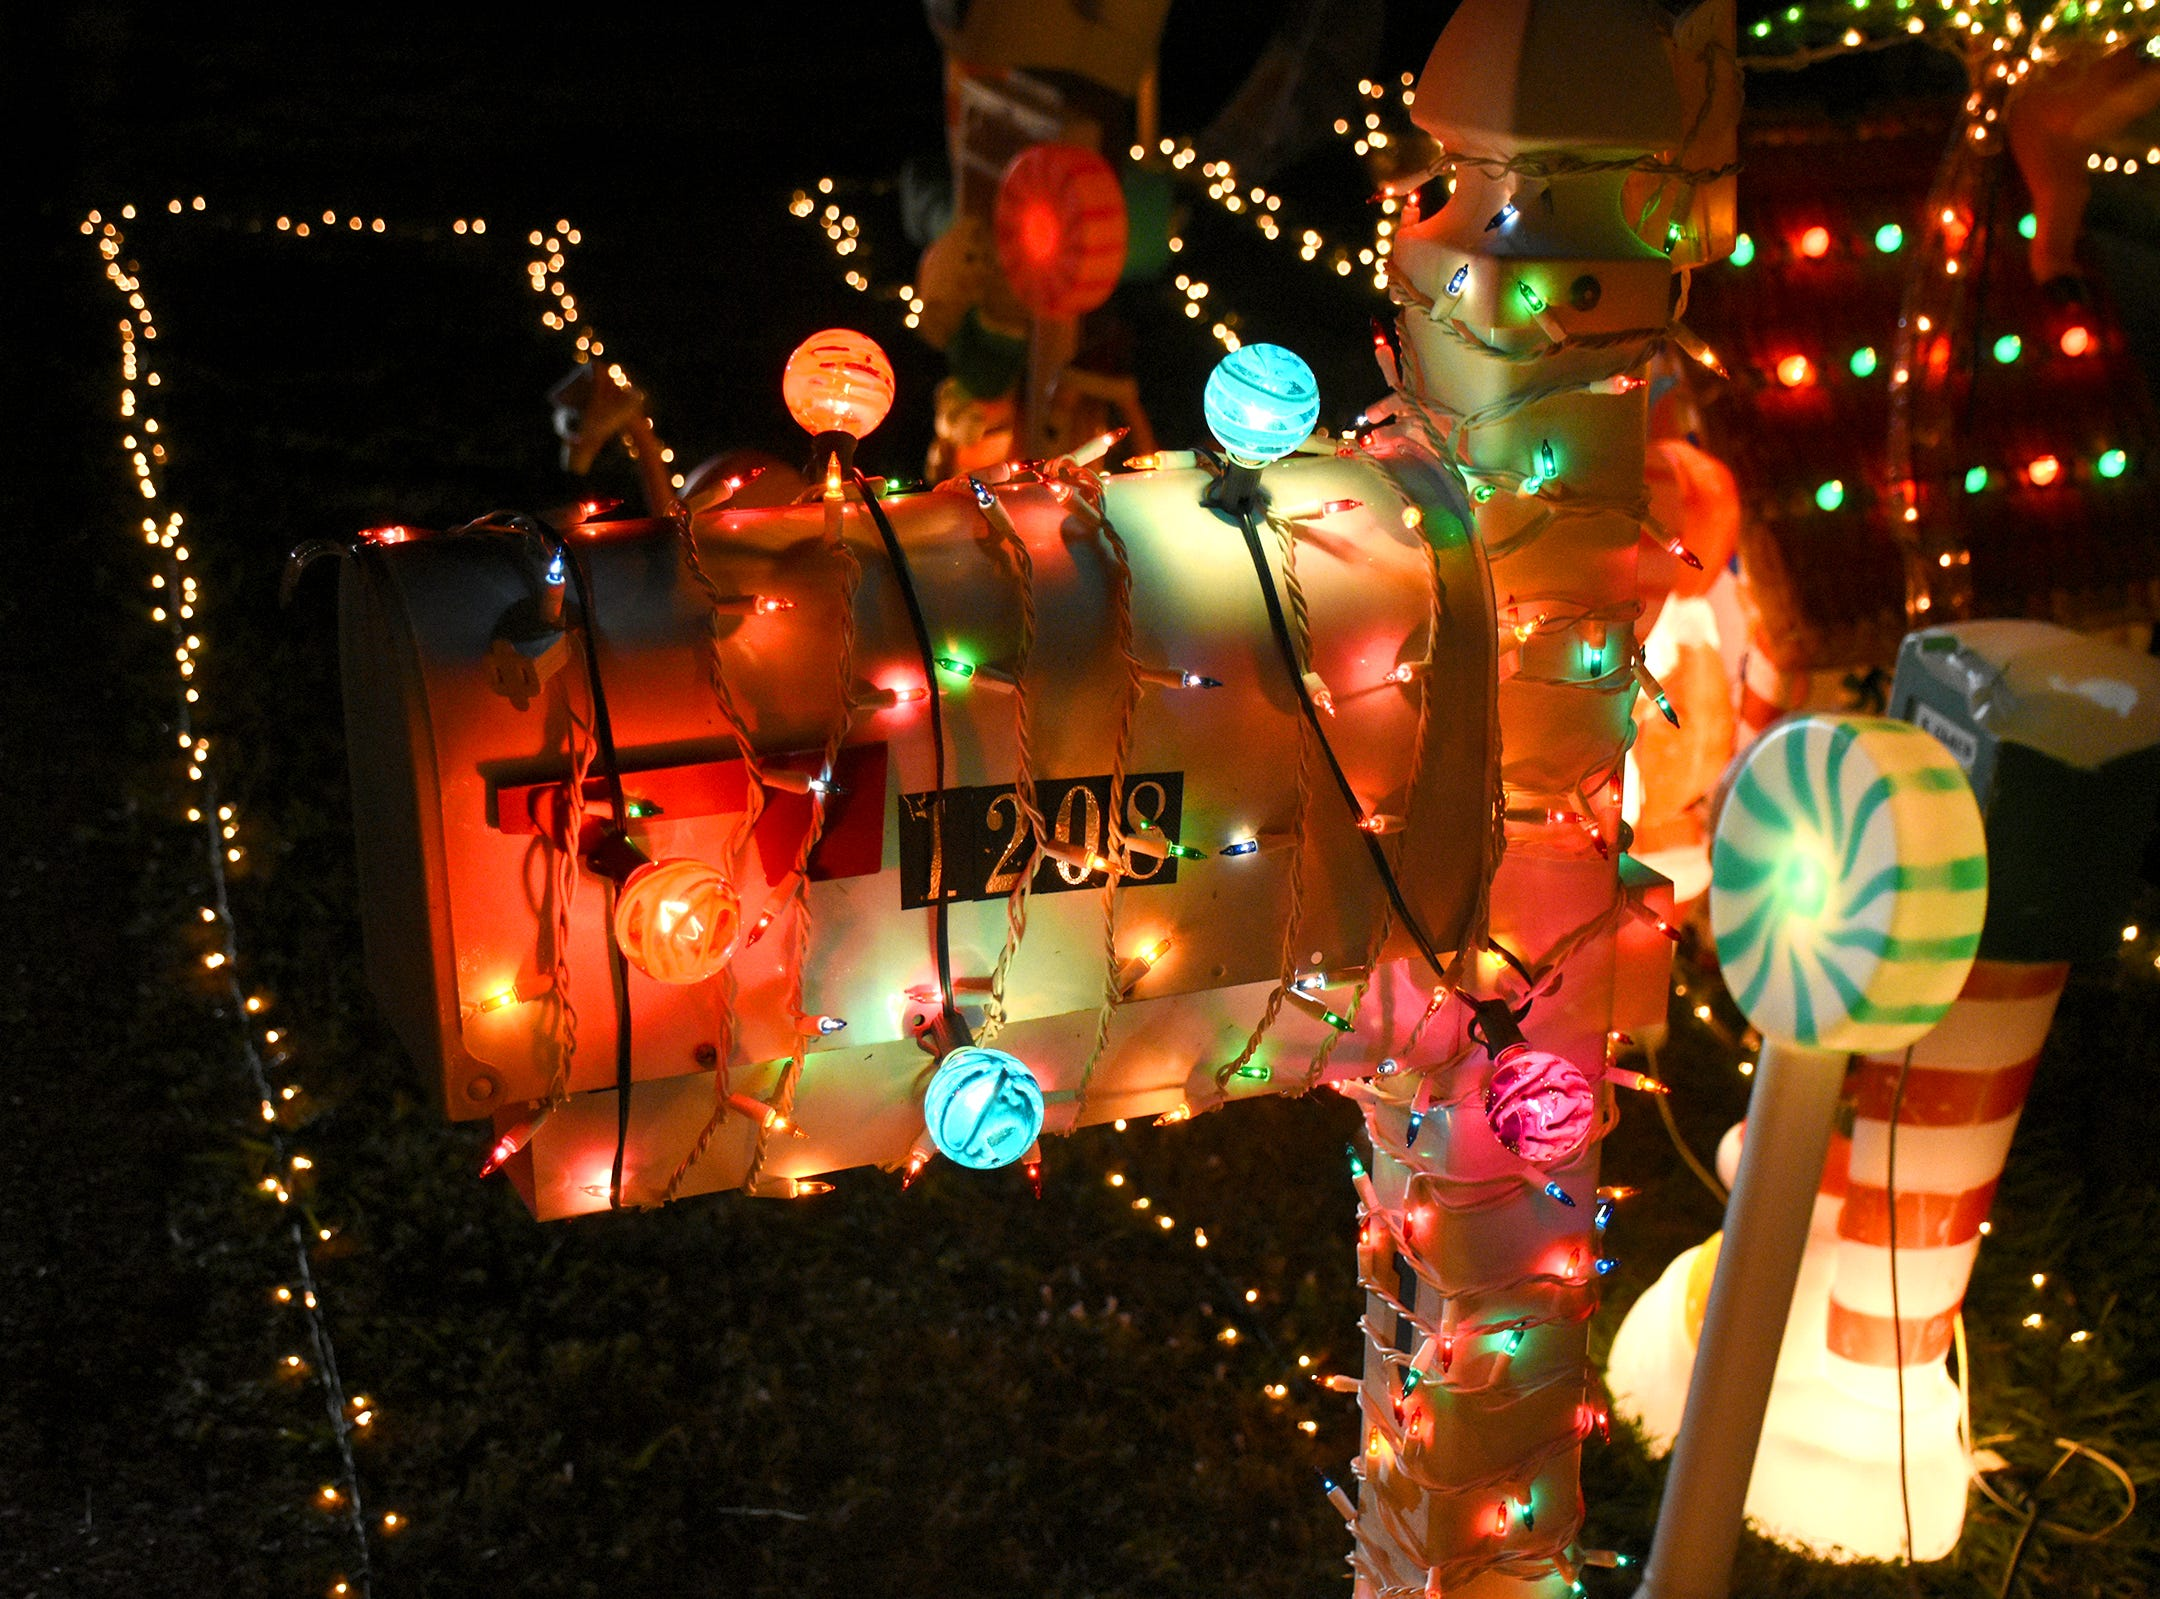 And that's just the mailbox at this entry during the judging of the annual Christmas Home Decorating Contest on Friday night.